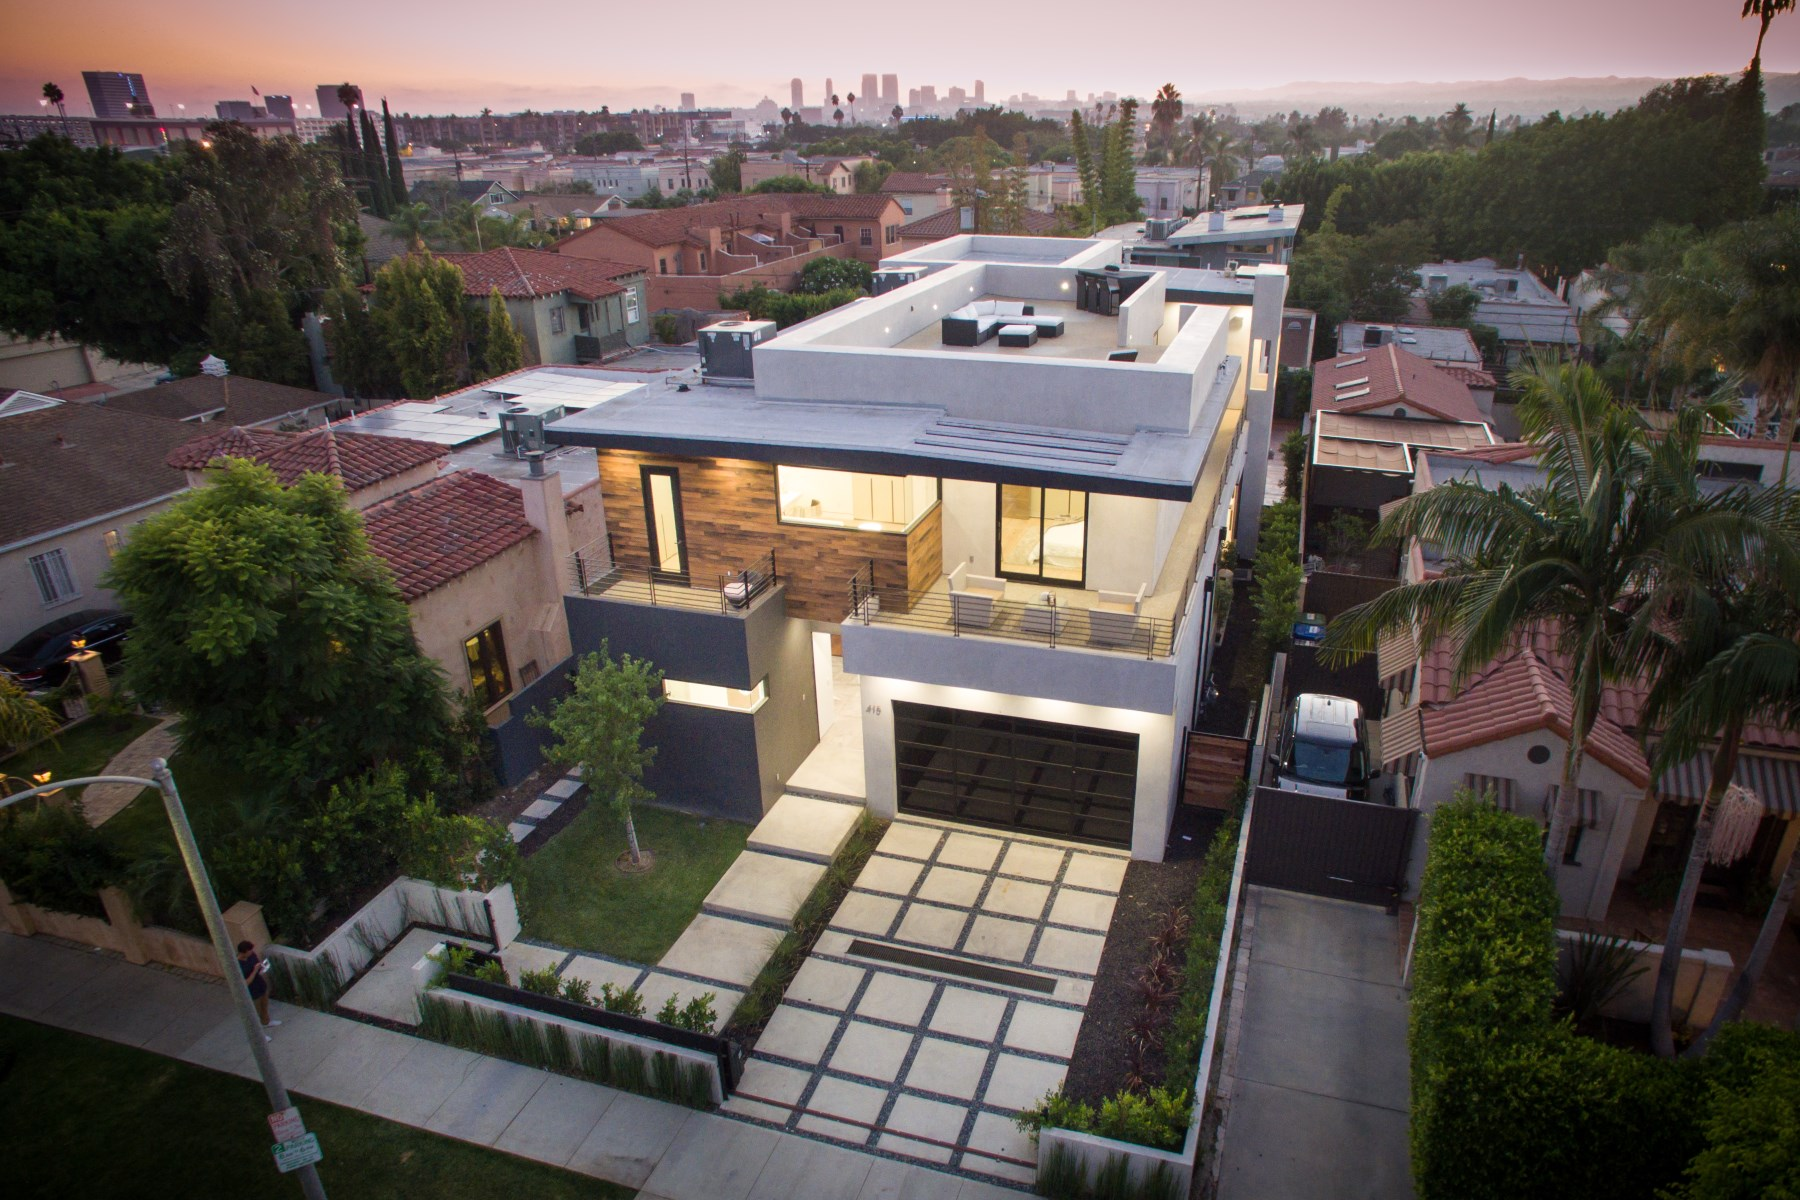 Vivienda unifamiliar por un Venta en Architectural Masterpiece 415 N Martel Ave Hollywood, Los Angeles, California, 90036 Estados Unidos